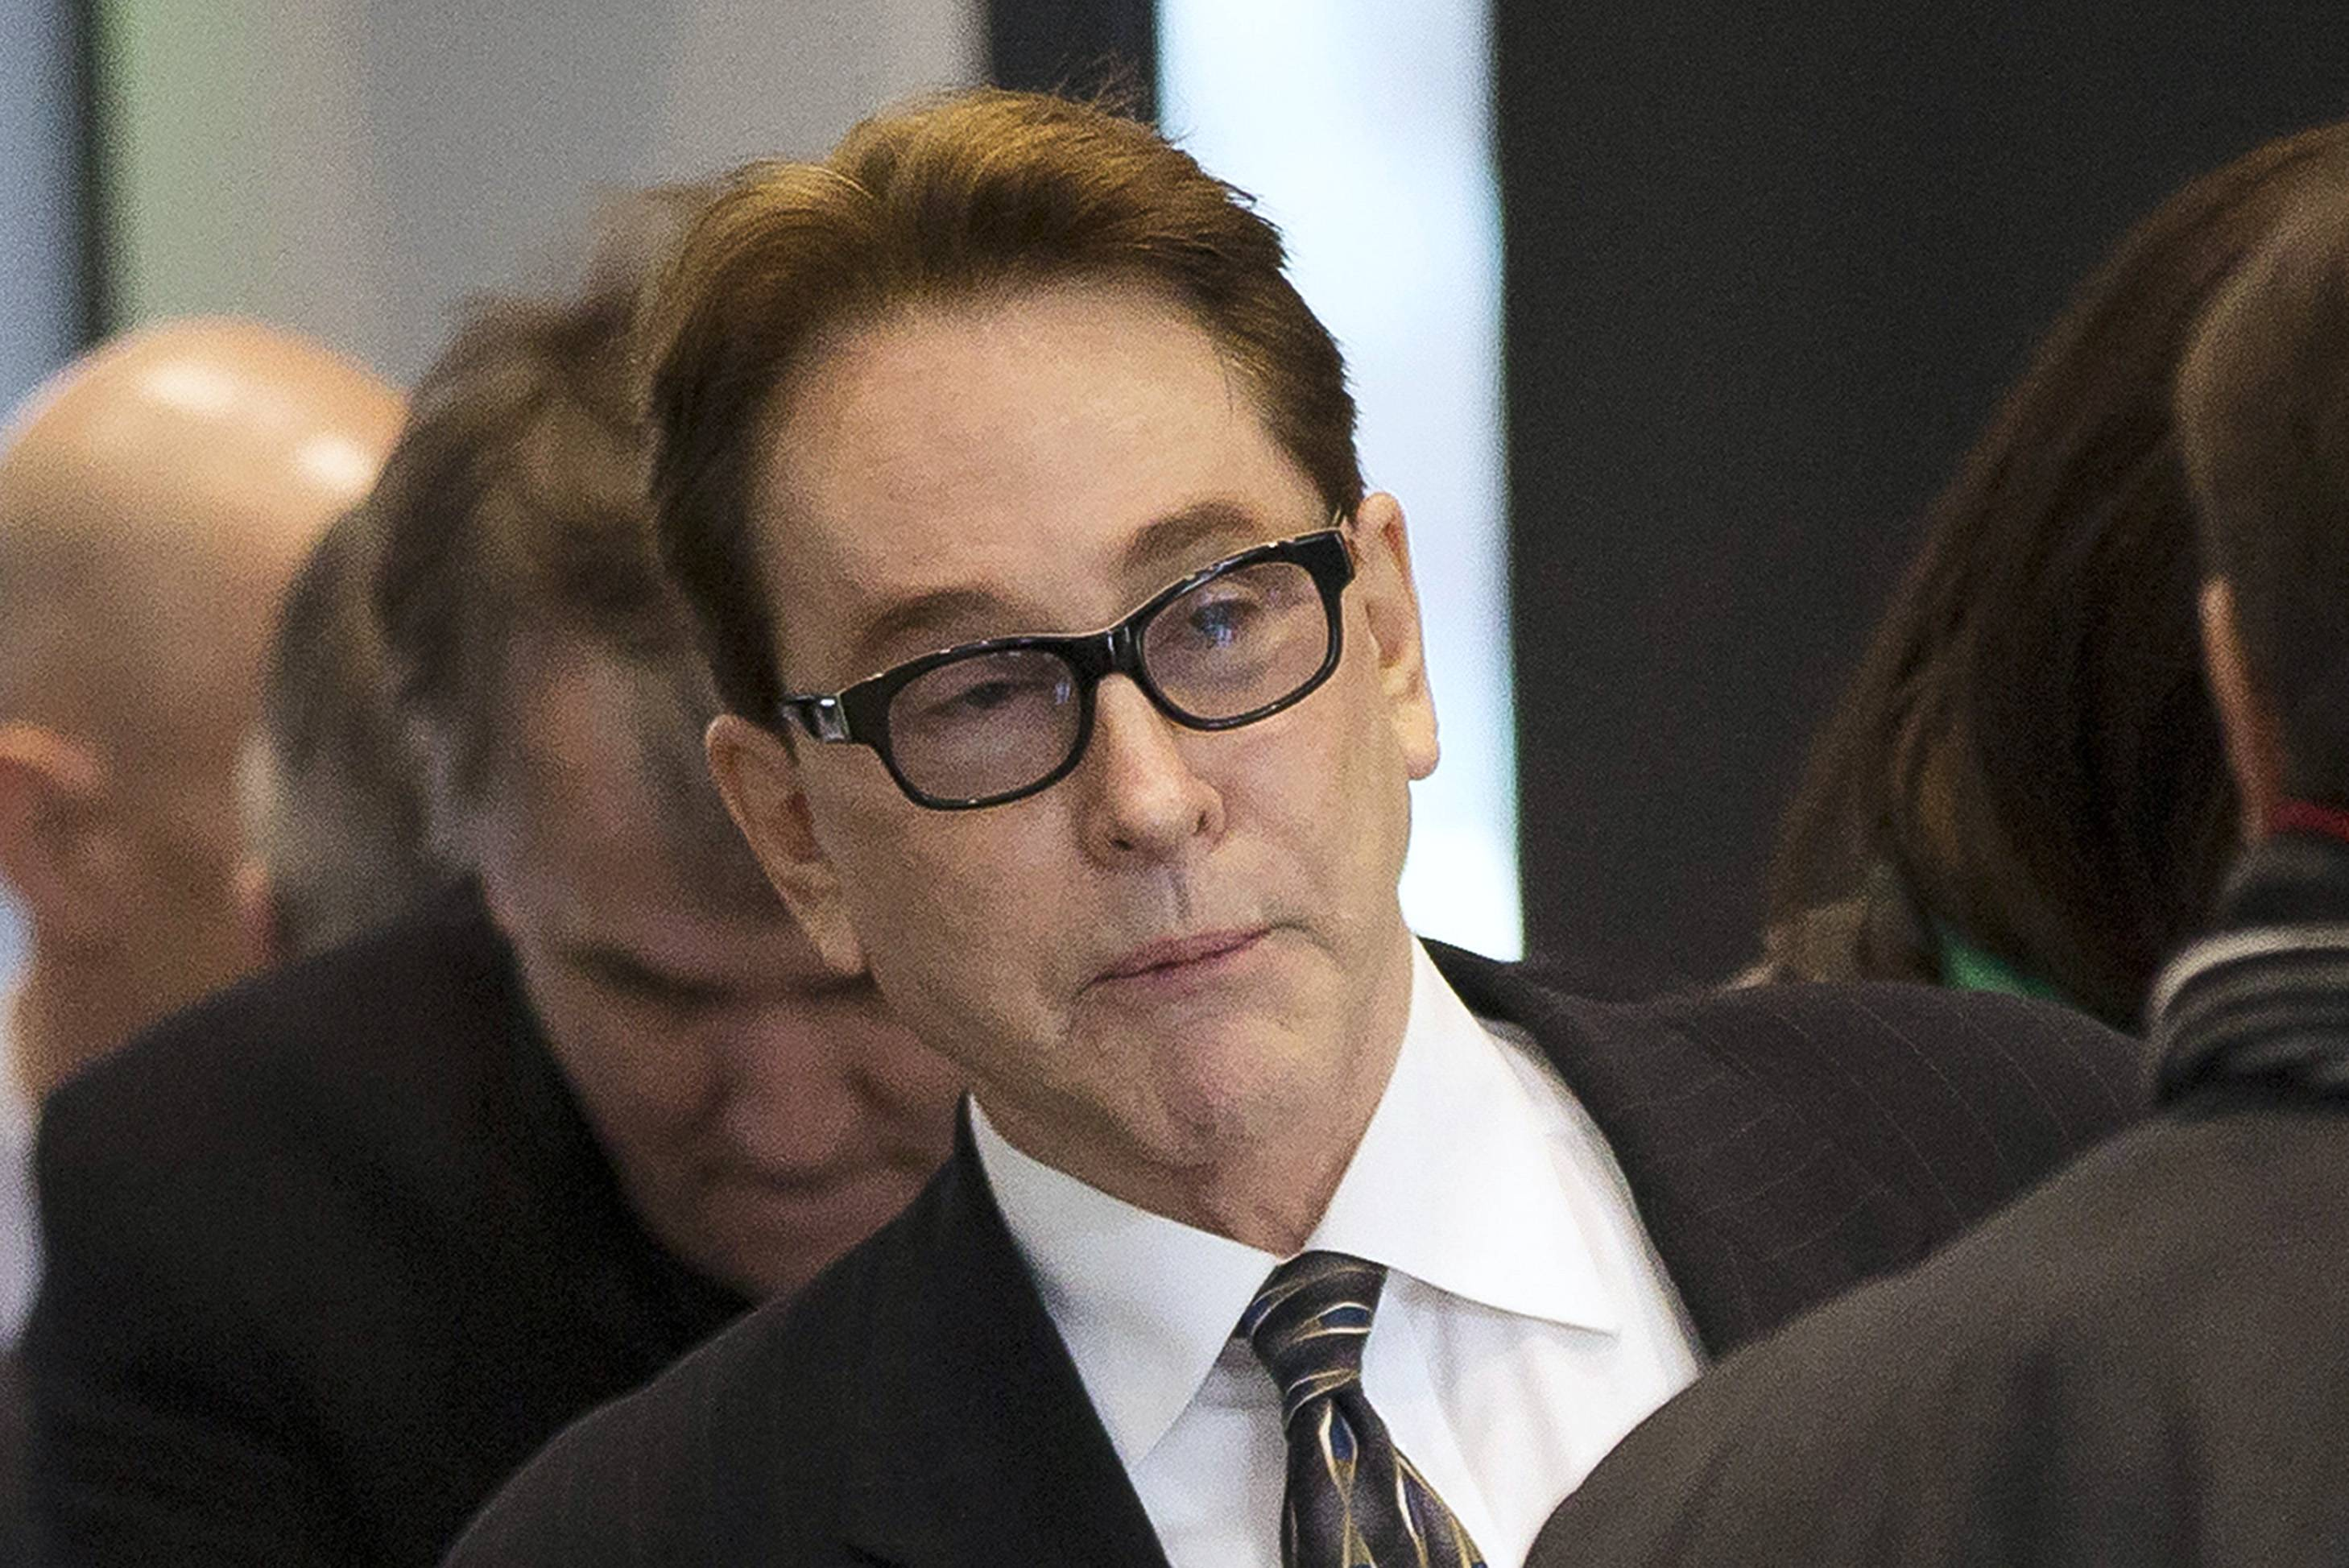 H. Ty Warner, the billionaire who created Beanie Babies, is seen at court Jan. 14. On Thursday, the U.S. attorney's office in Chicago filed a notice appealing the sentence for Warner that included no prison time for hiding around $25 million from U.S. tax authorities.